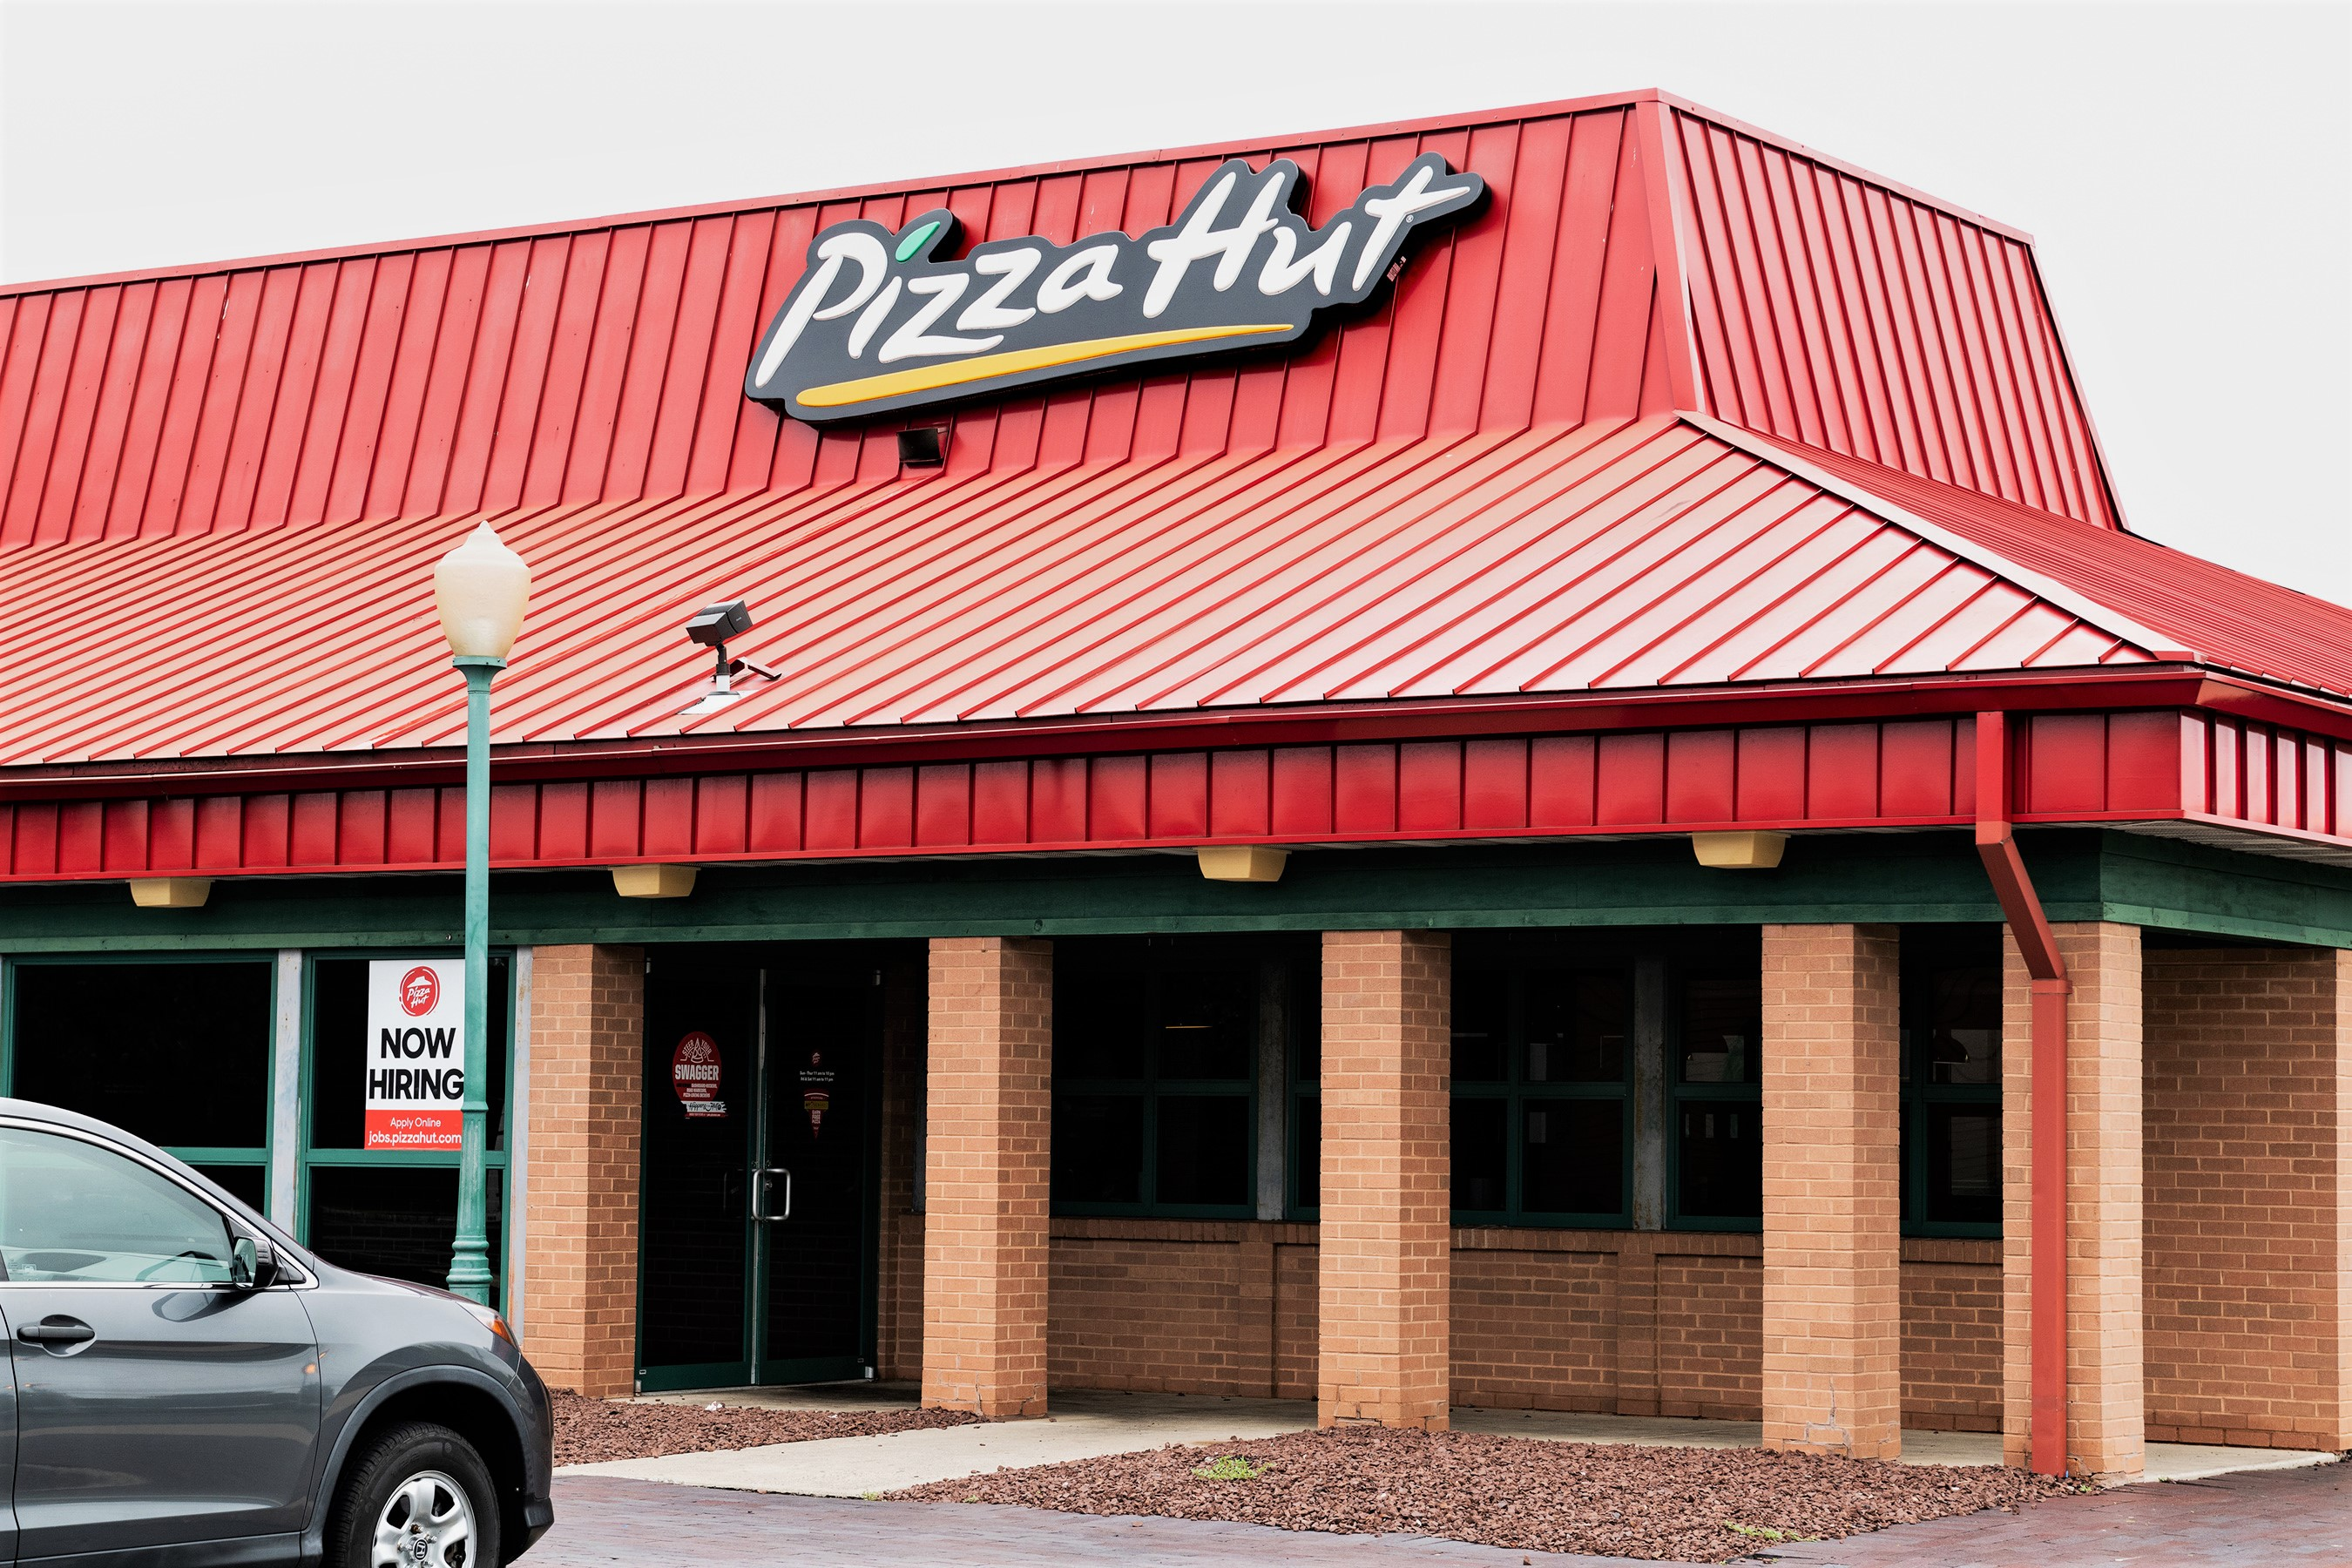 Dine In Pizza Hut Storefront